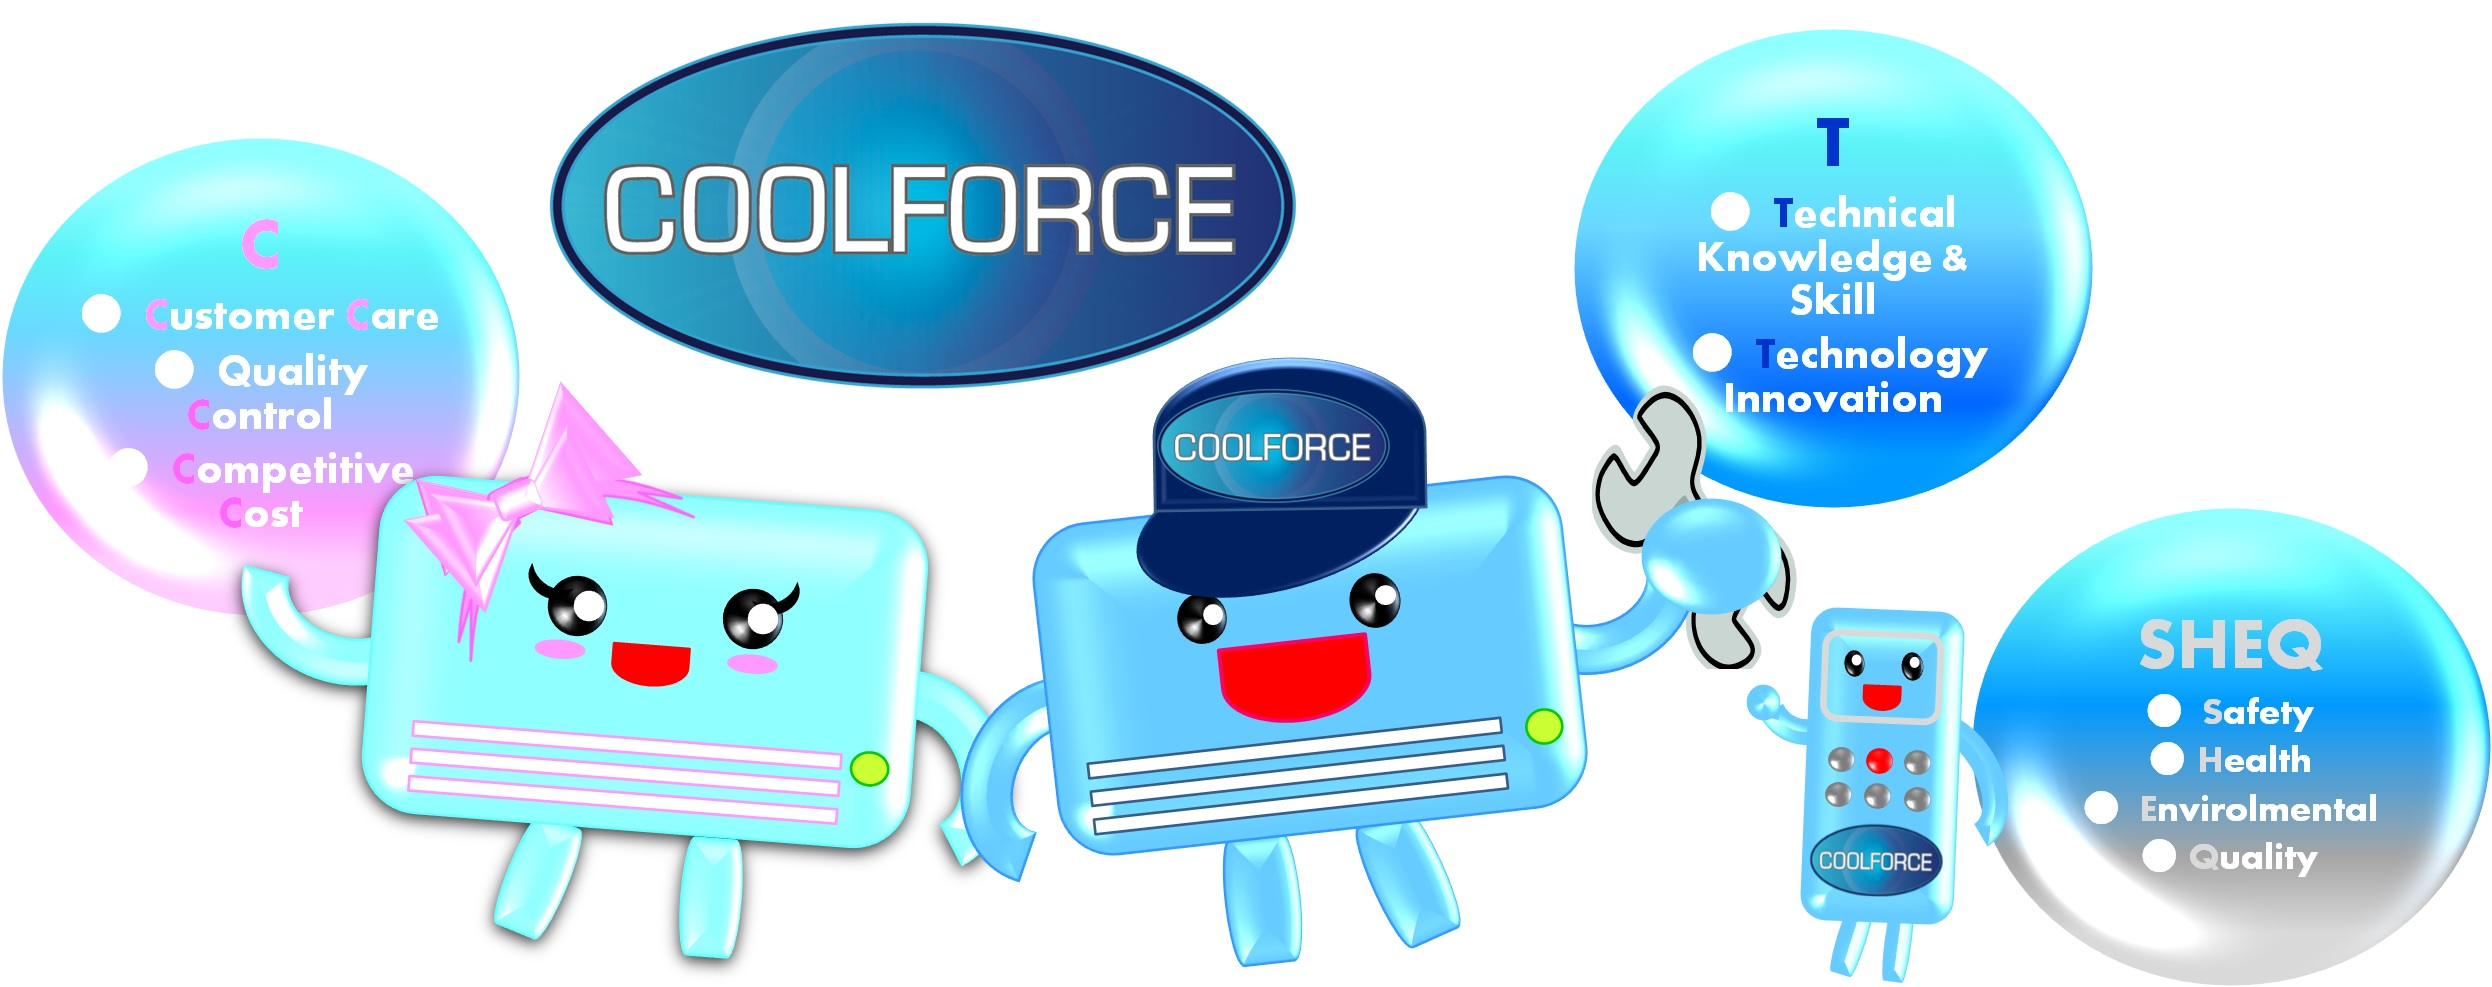 coolforce aircon engineering